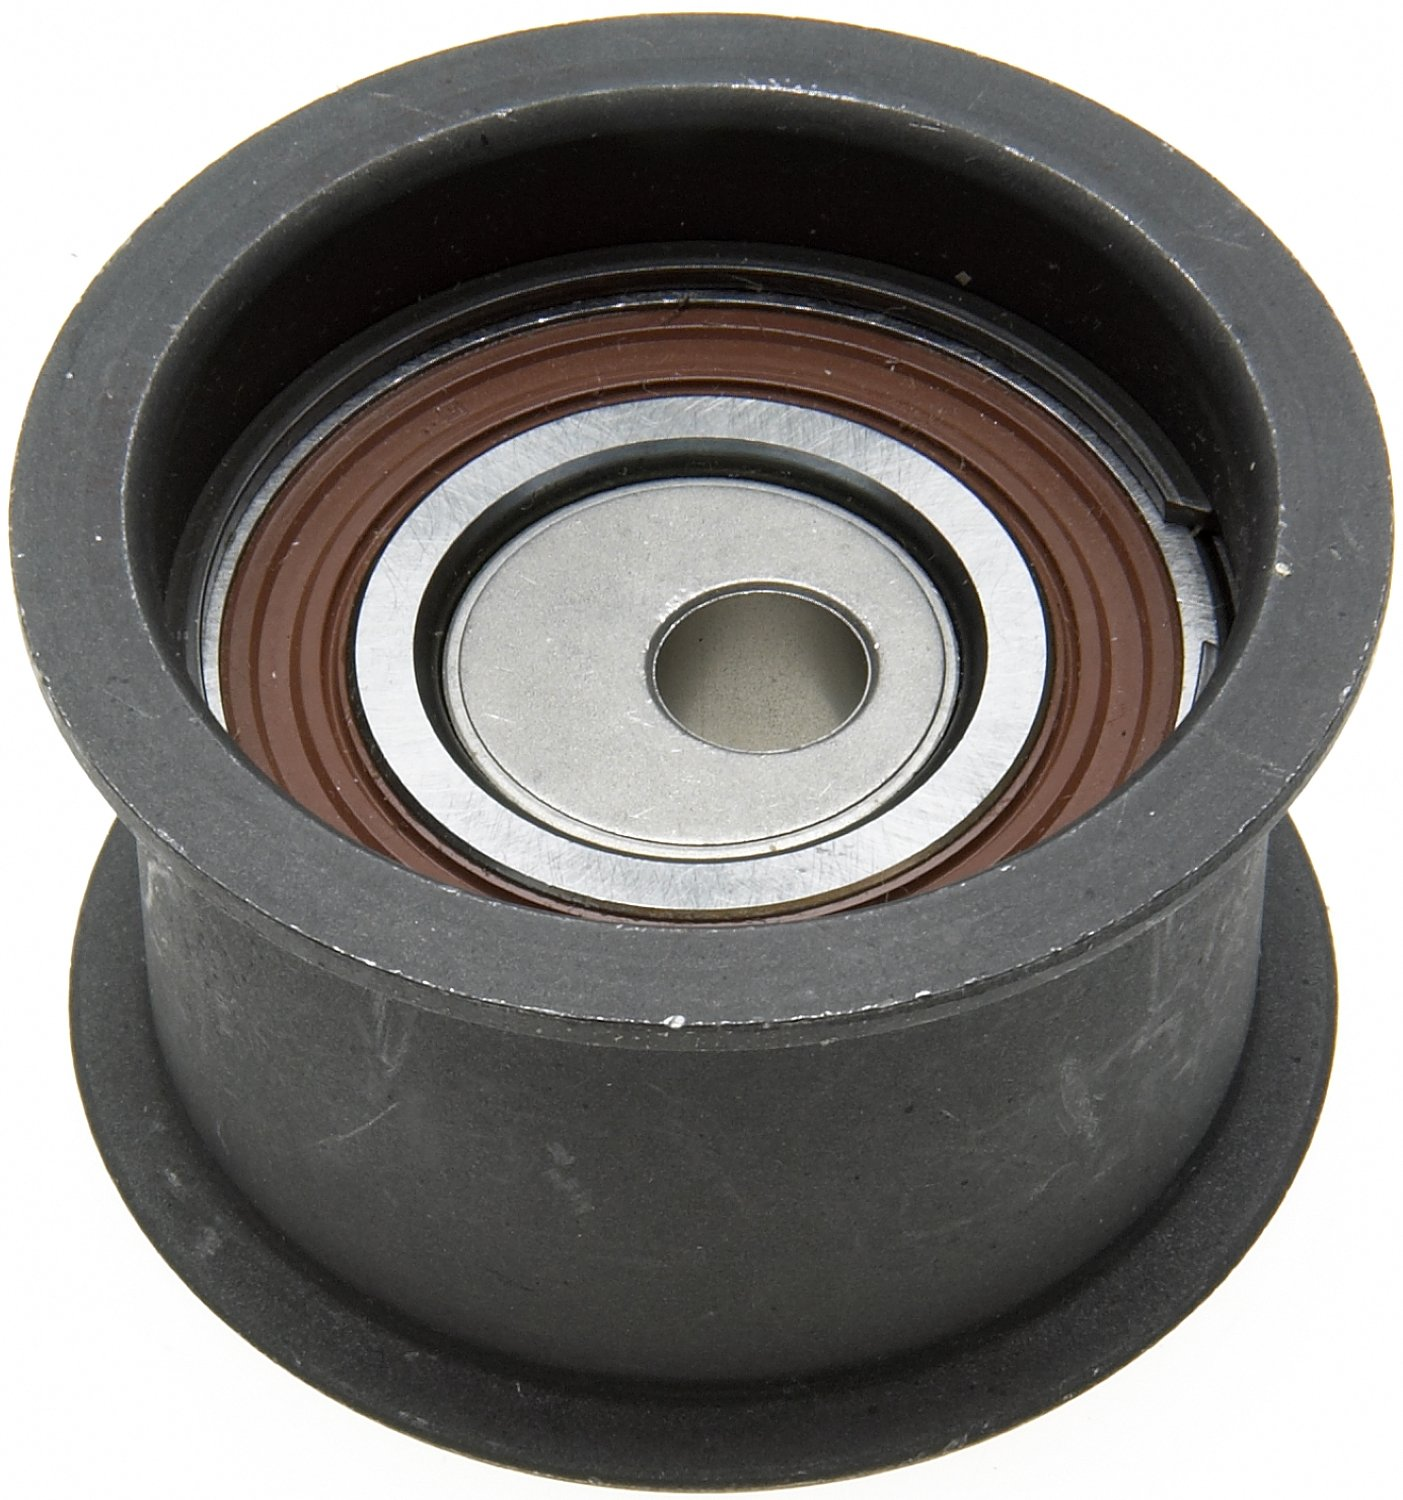 ACDelco T42086 Professional Manual Timing Belt Tensioner and Flanged Pulley Assembly with Spacer